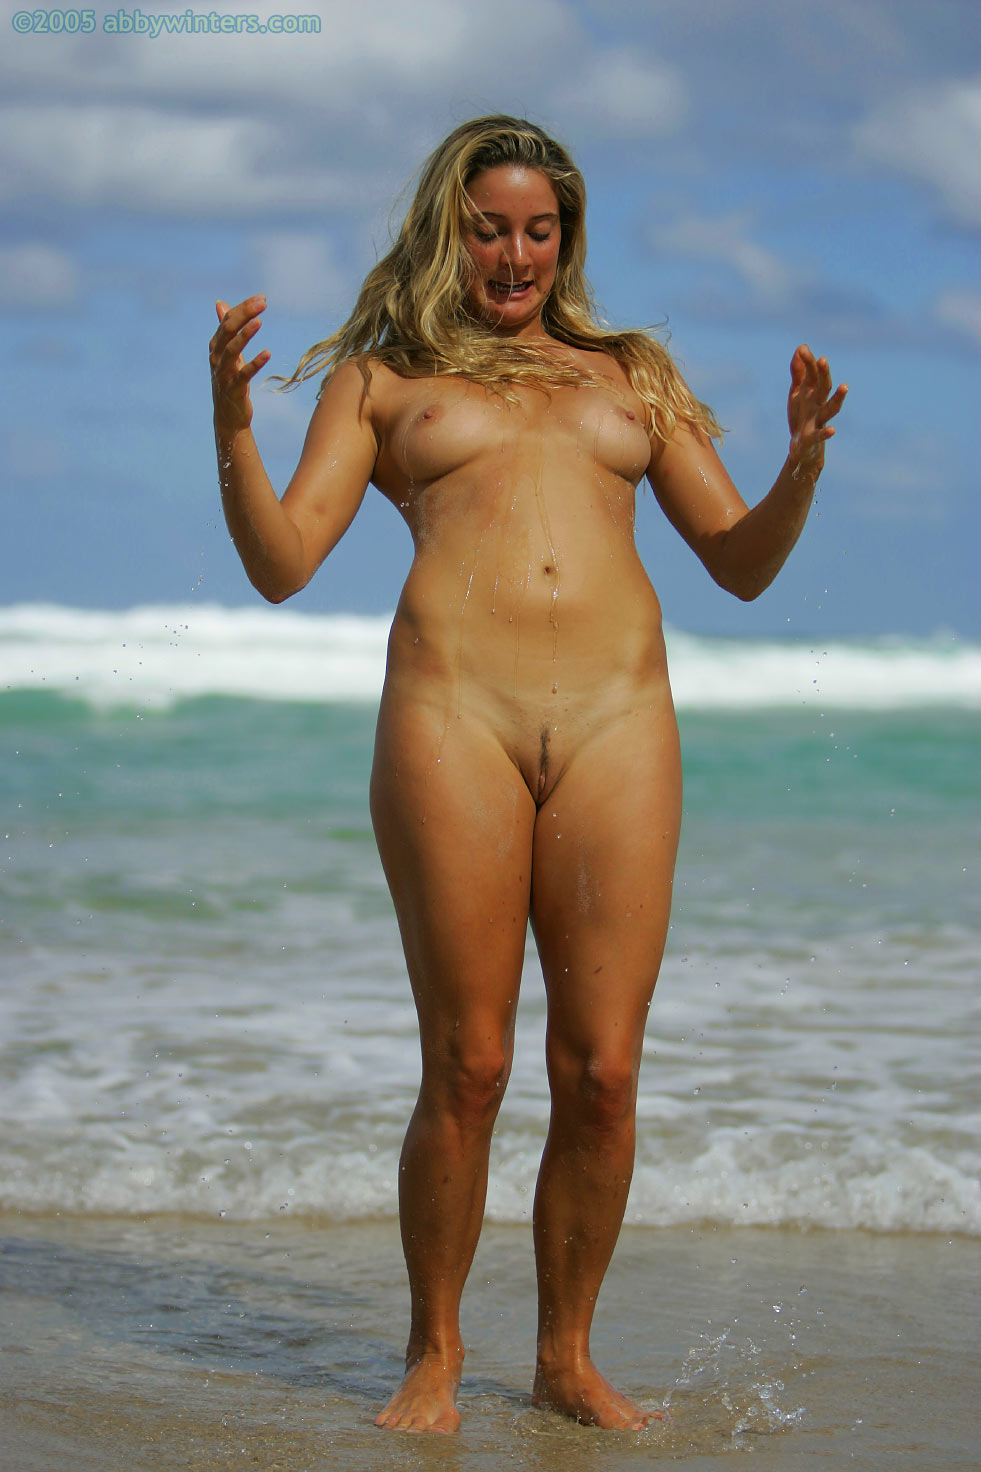 Lily rabe leaked nude naked (54 photos), Topless Celebrity images